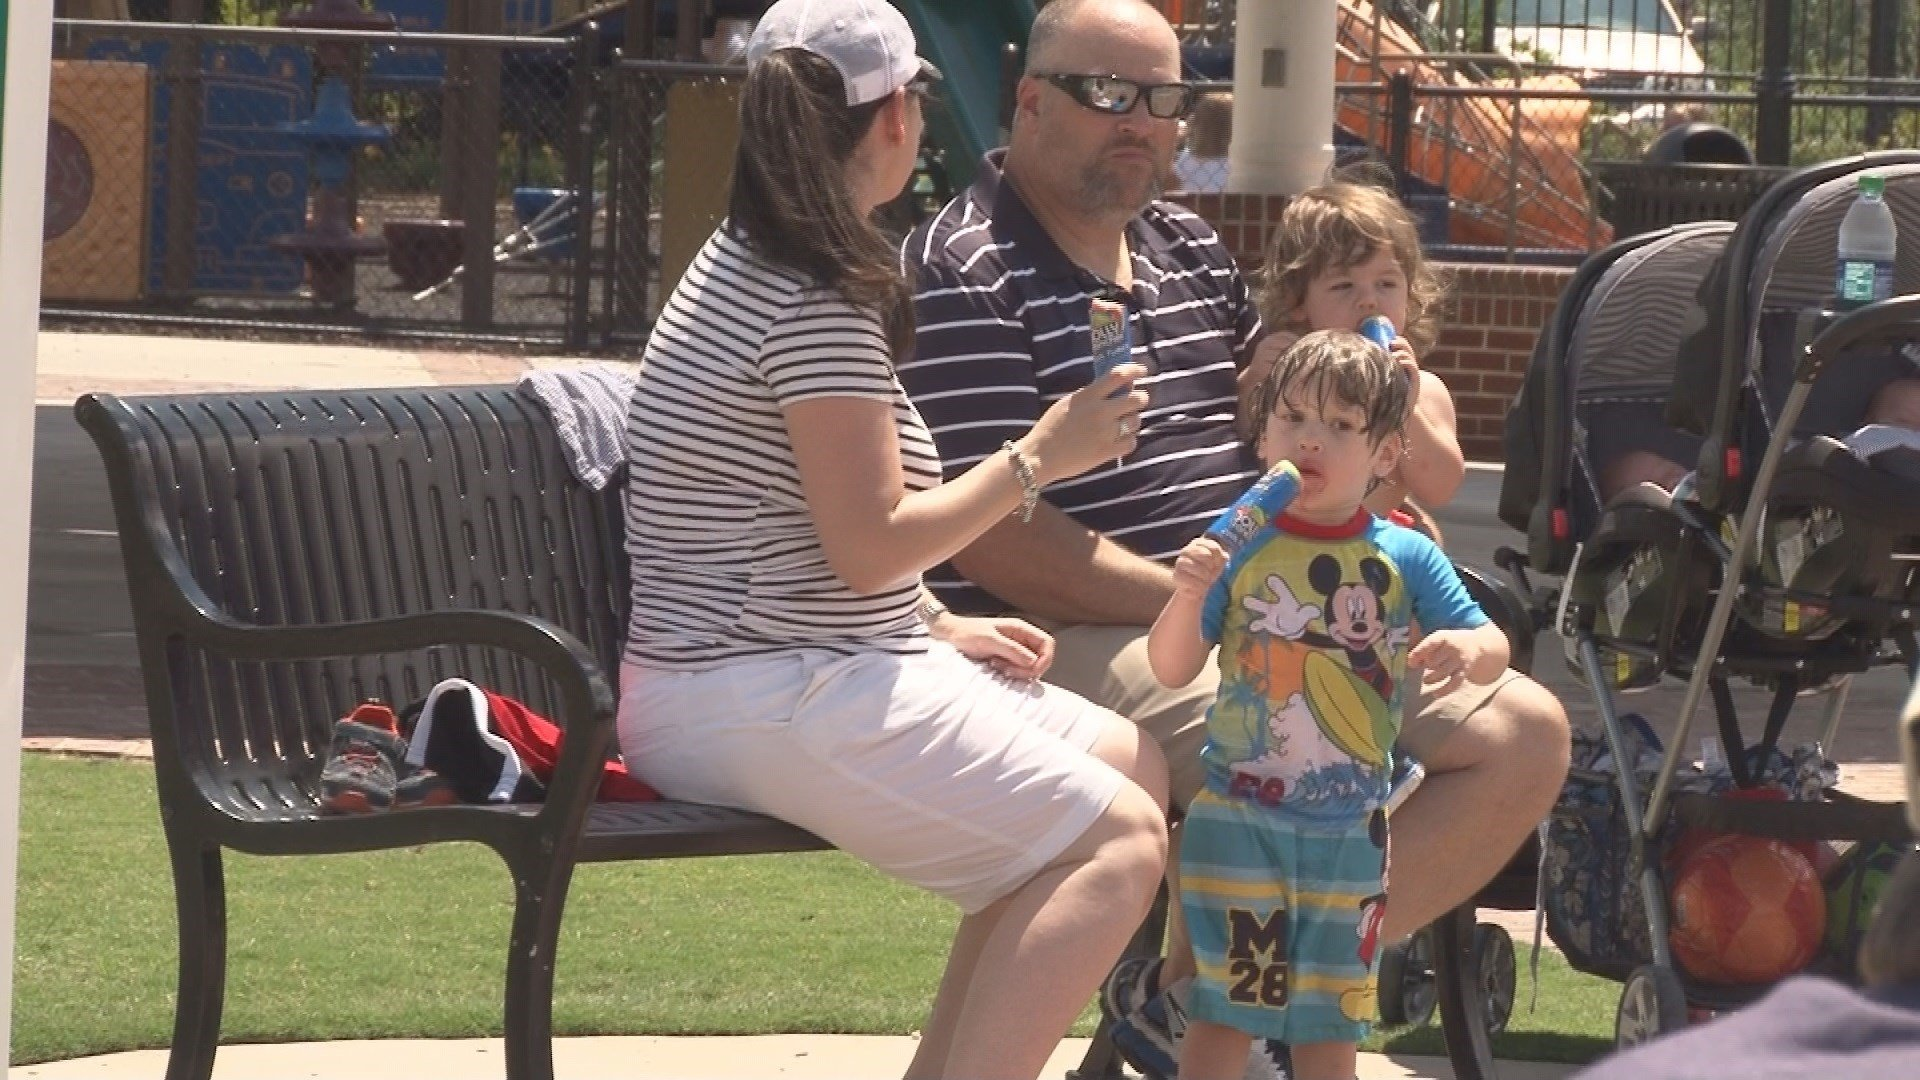 Families celebrate Father's Day at Evans Towne Center Park (wfxg)